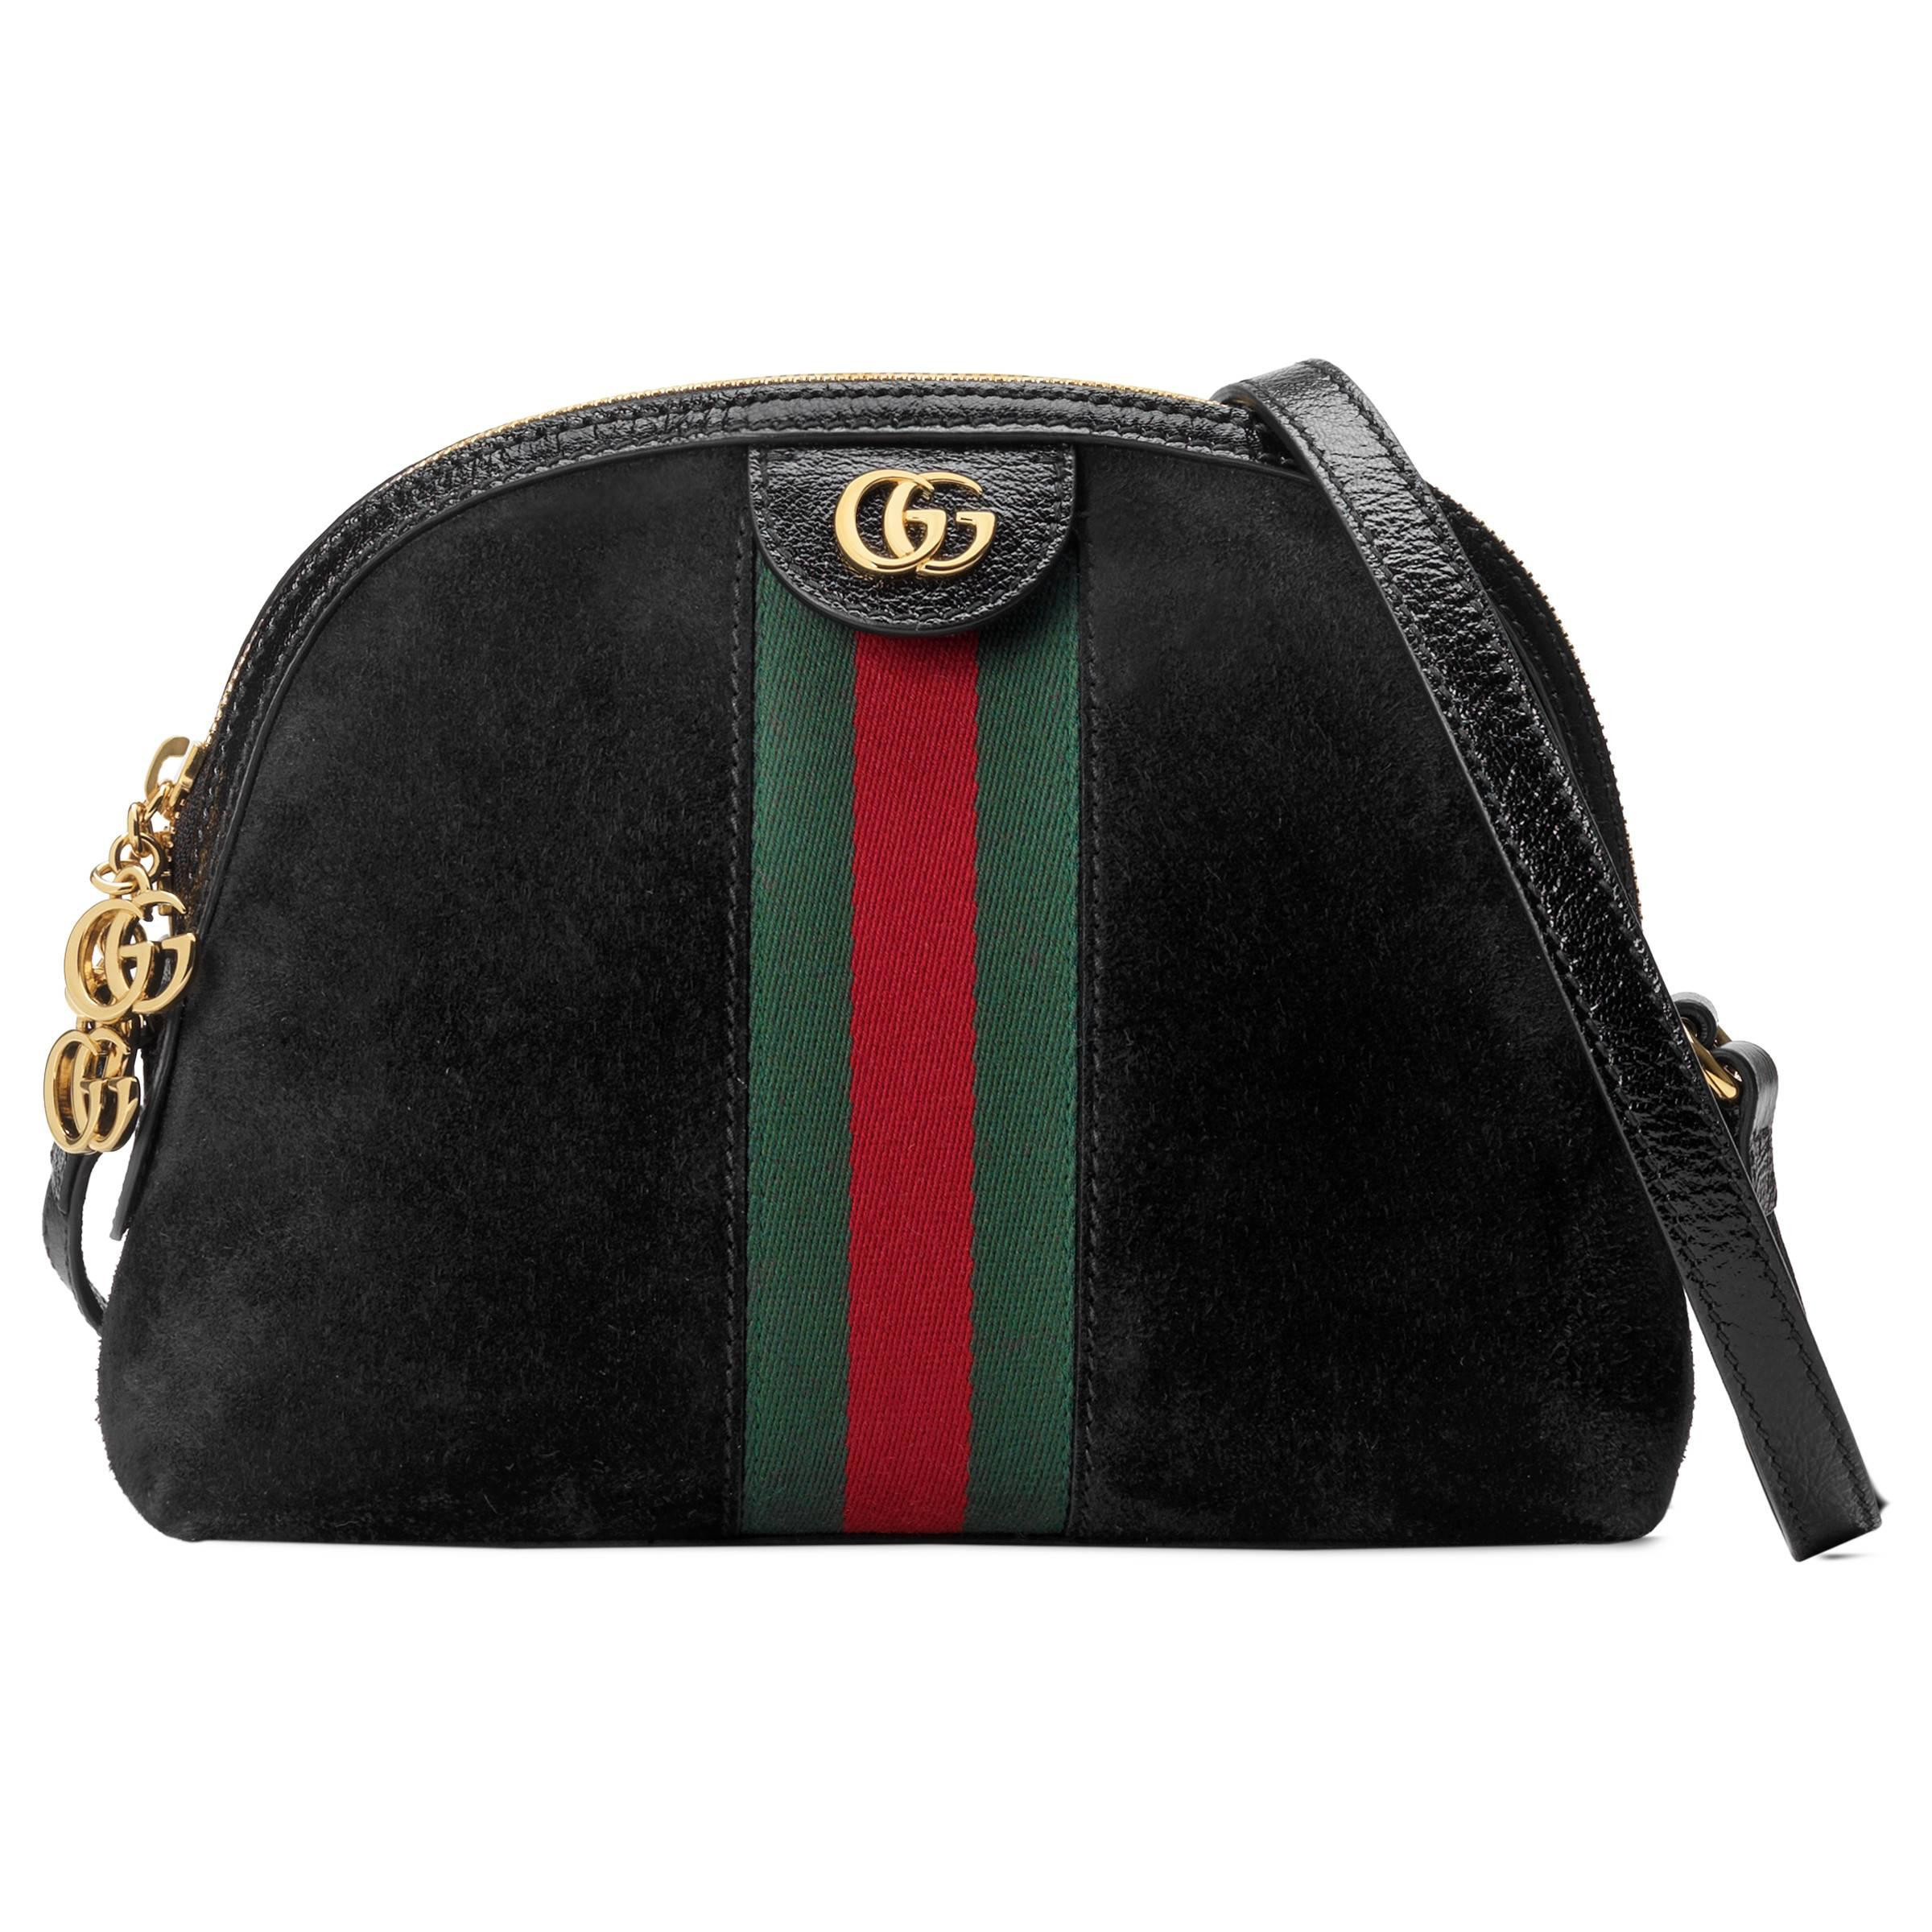 d7e7f32aebfa Gucci Ophidia Small Shoulder Bag in Black - Save 6% - Lyst